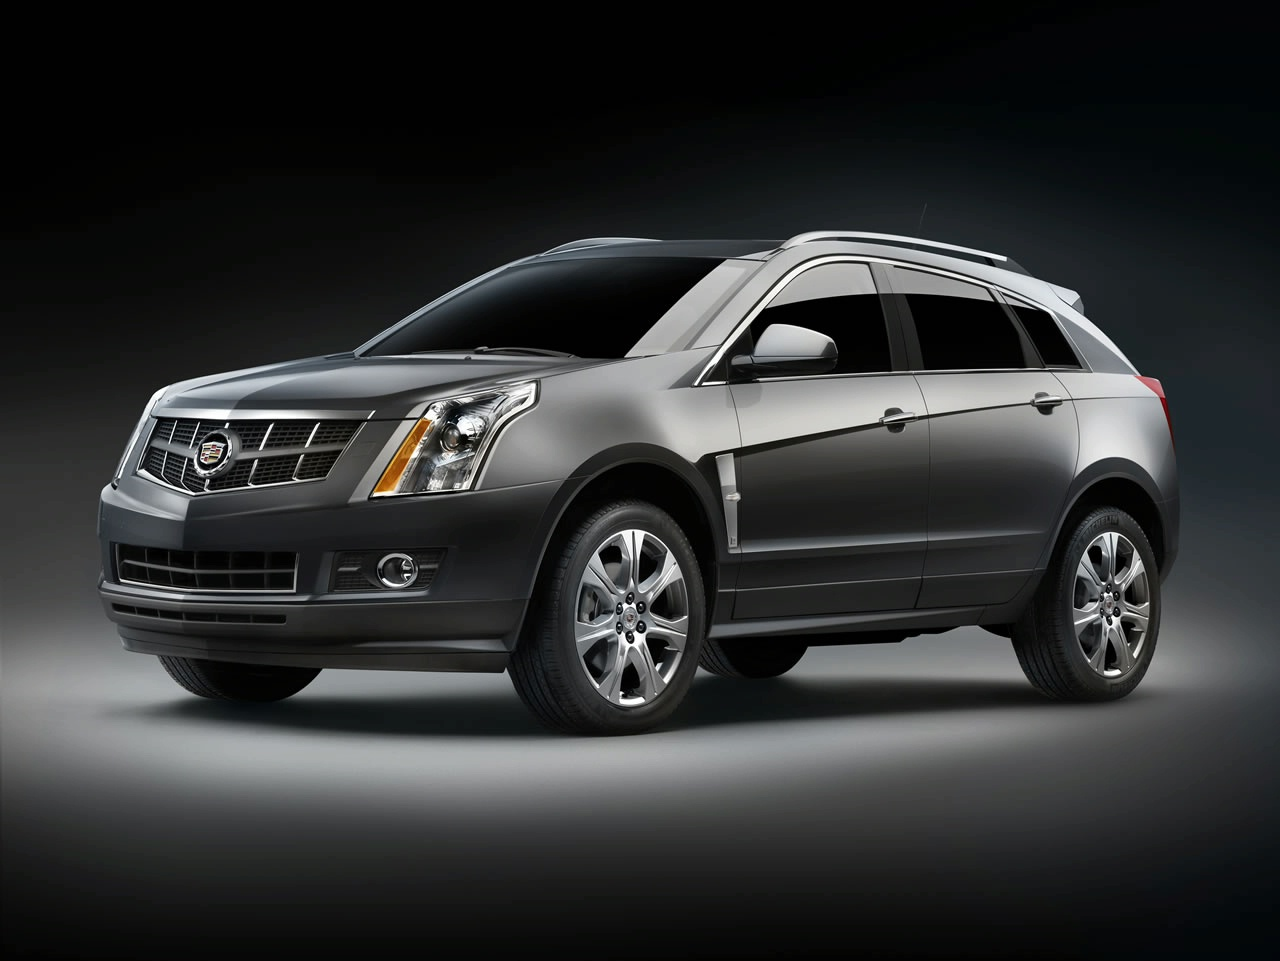 2010 cadillac srx unveiled autoevolution. Black Bedroom Furniture Sets. Home Design Ideas